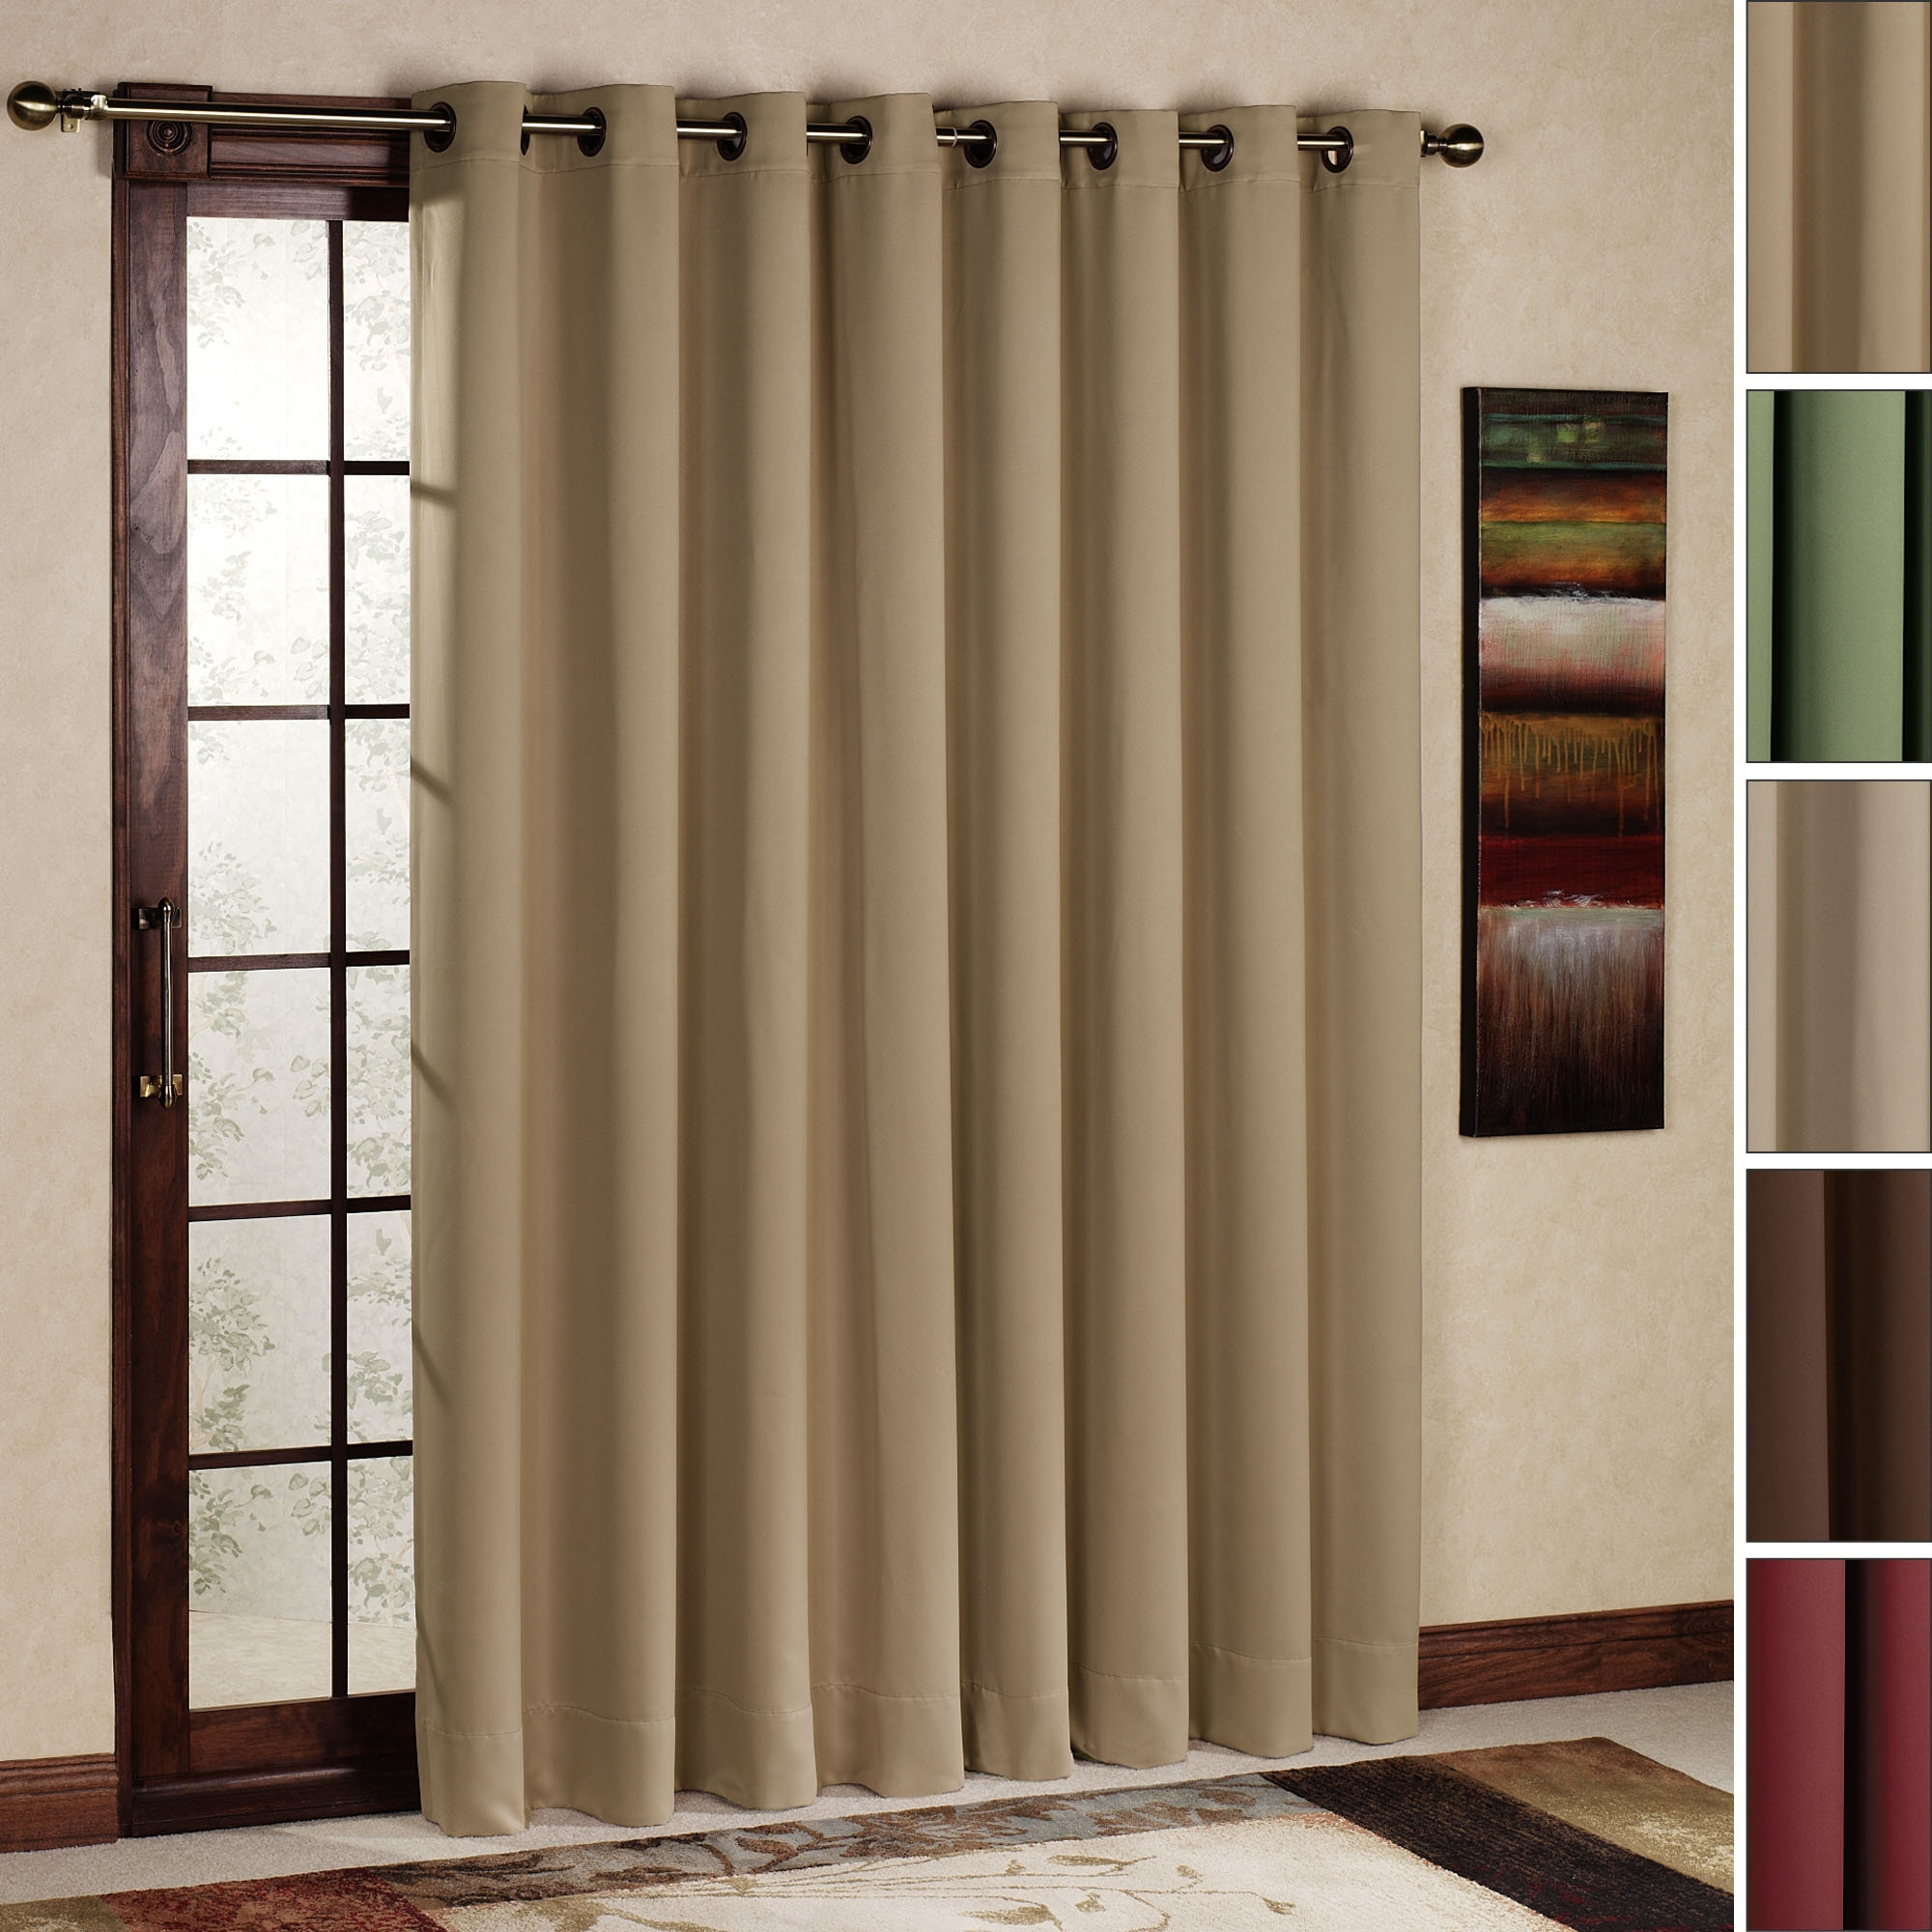 Sliding Glass Door Drapes Customfree sliding glass door window treatments curtains on with hd